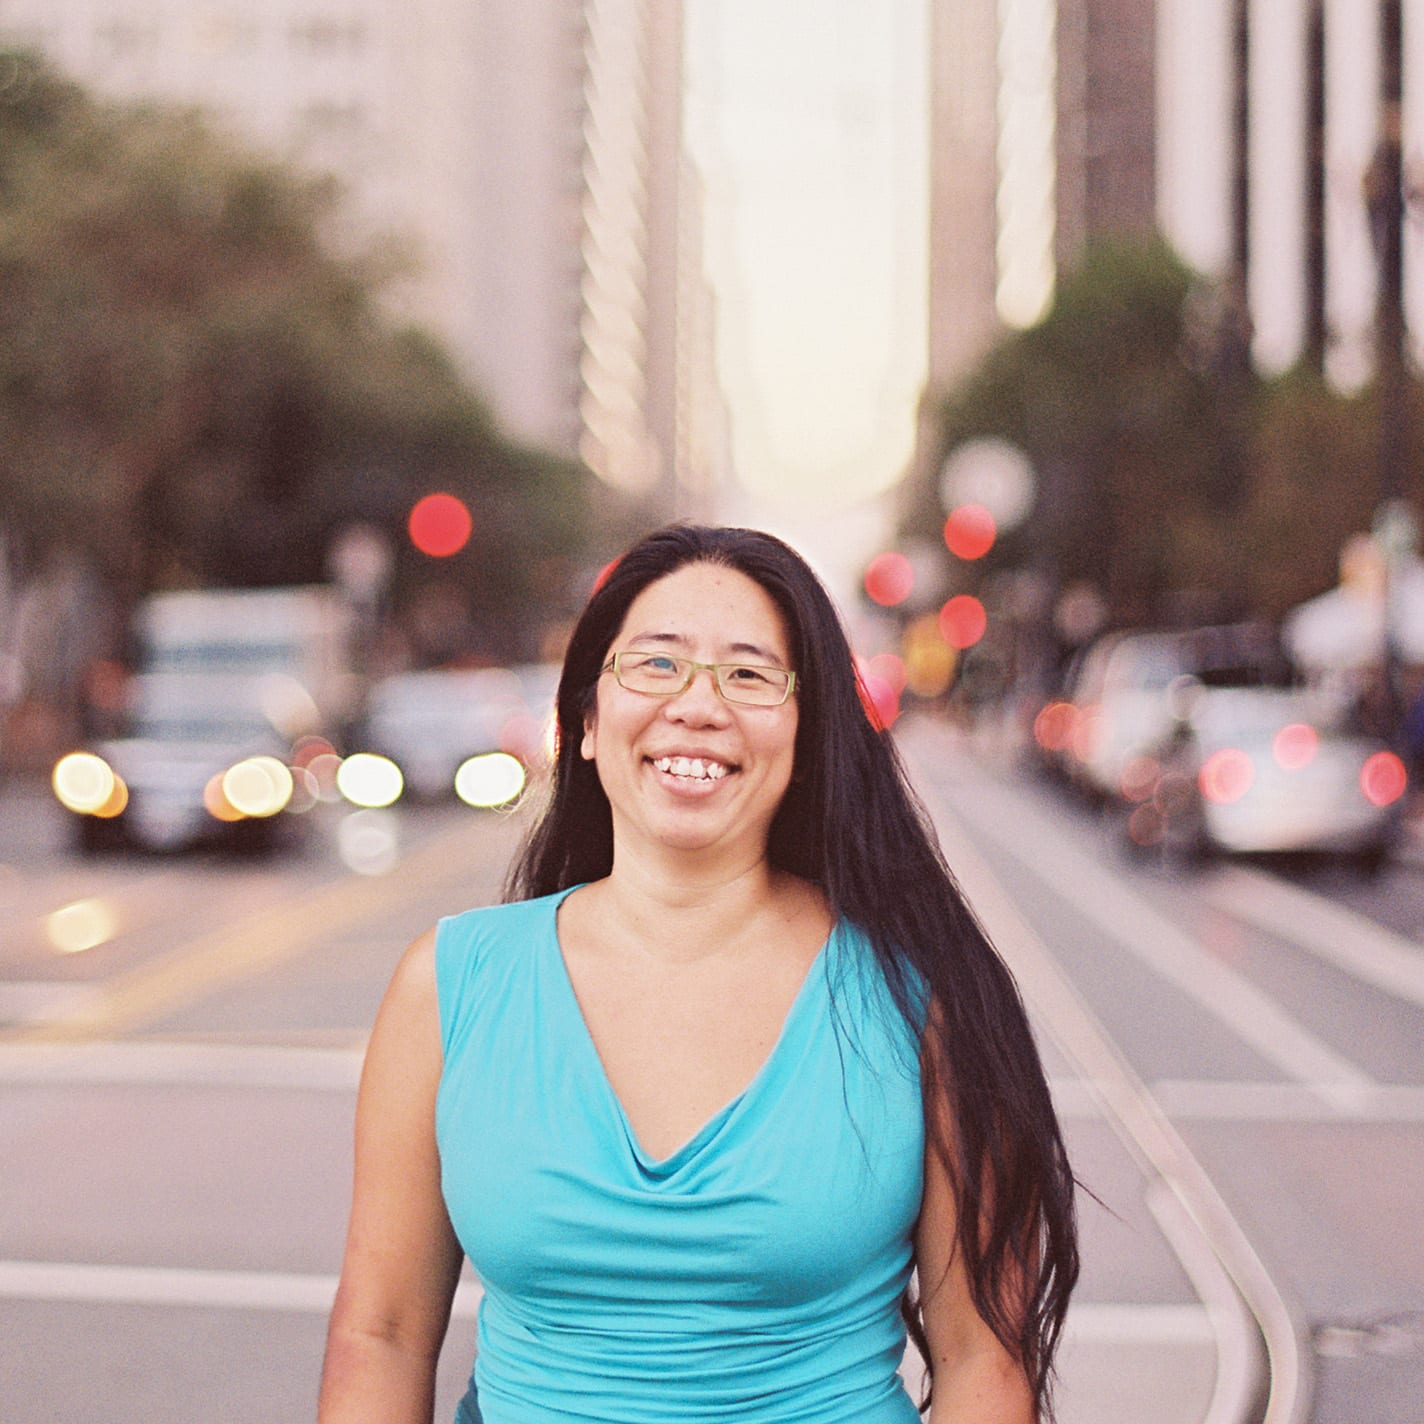 Long haired smiling person with glasses standing on a city street